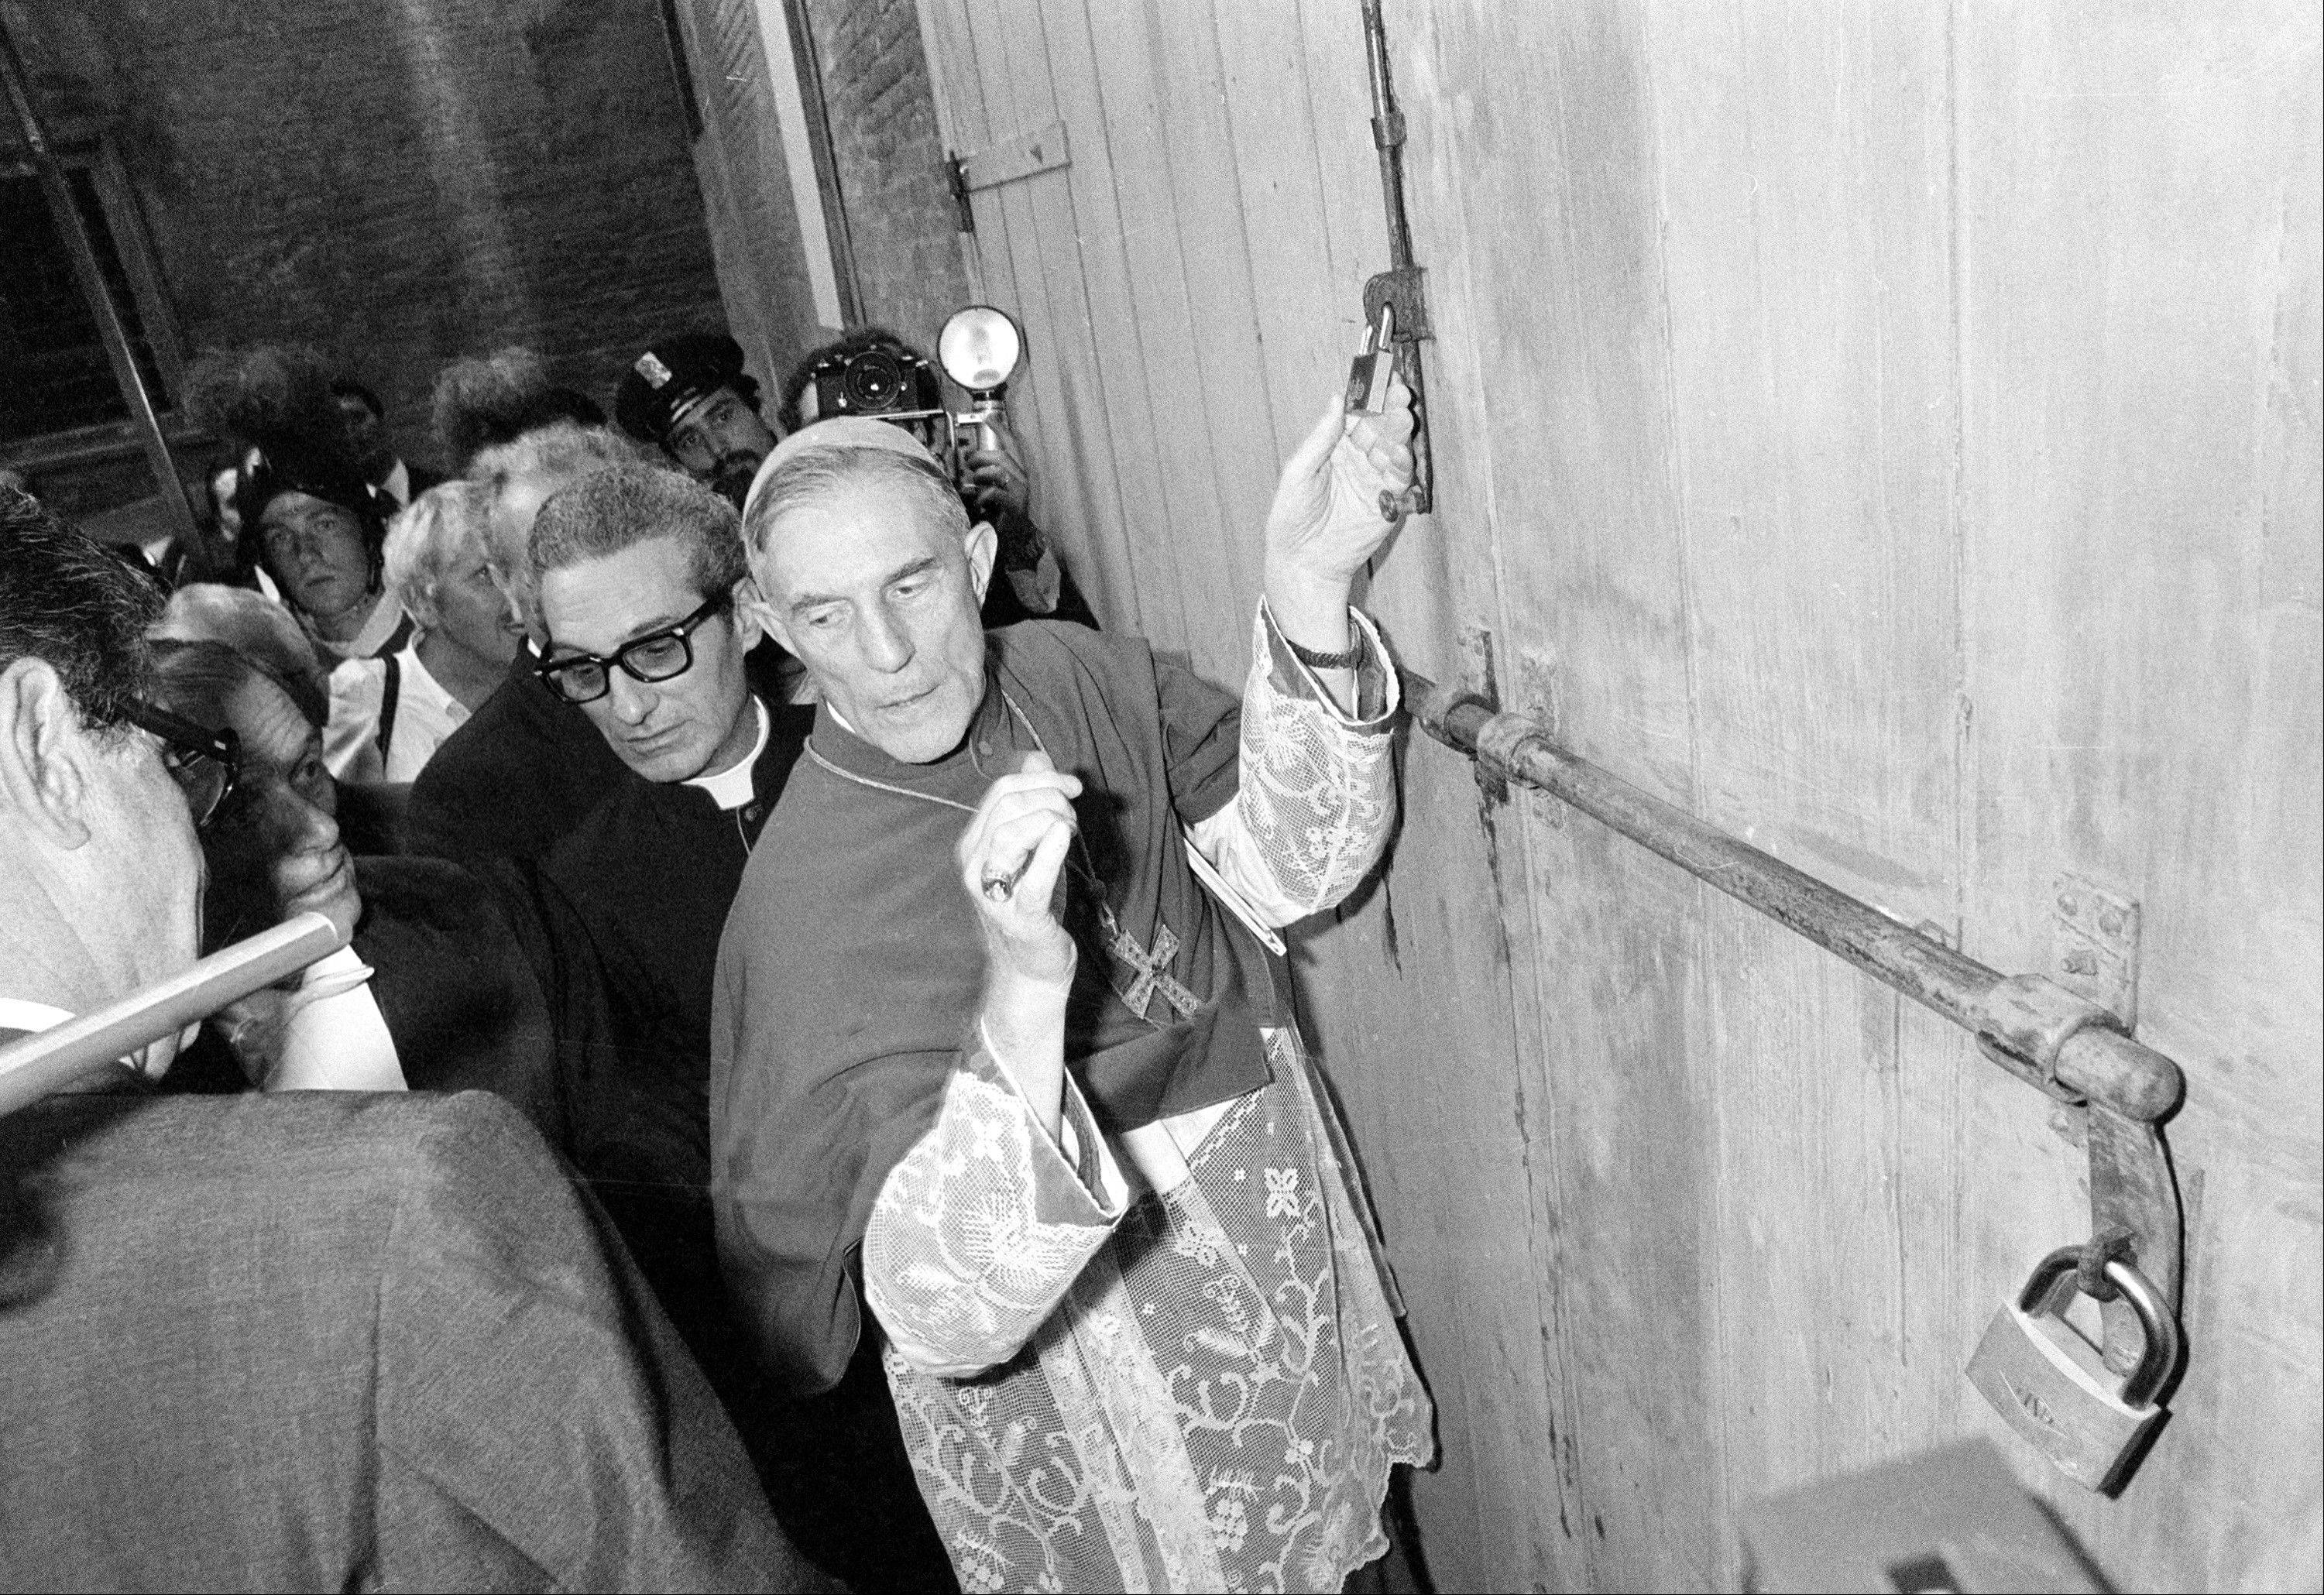 This Aug. 25, 1978 file photo shows Bishop Jacques Martin of France, center, outgoing head of the Pontifical household, and Guglielmo Felice, consistorial lawyer of Vatican City, left, locking one of the gates of the conclave area after all 111 cardinals entered the conclave to elect a new pope. Elaborate ritual and veils of secrecy, after all, are fundamental to the papal mystique, seen as the glue the binds worshippers in faith.